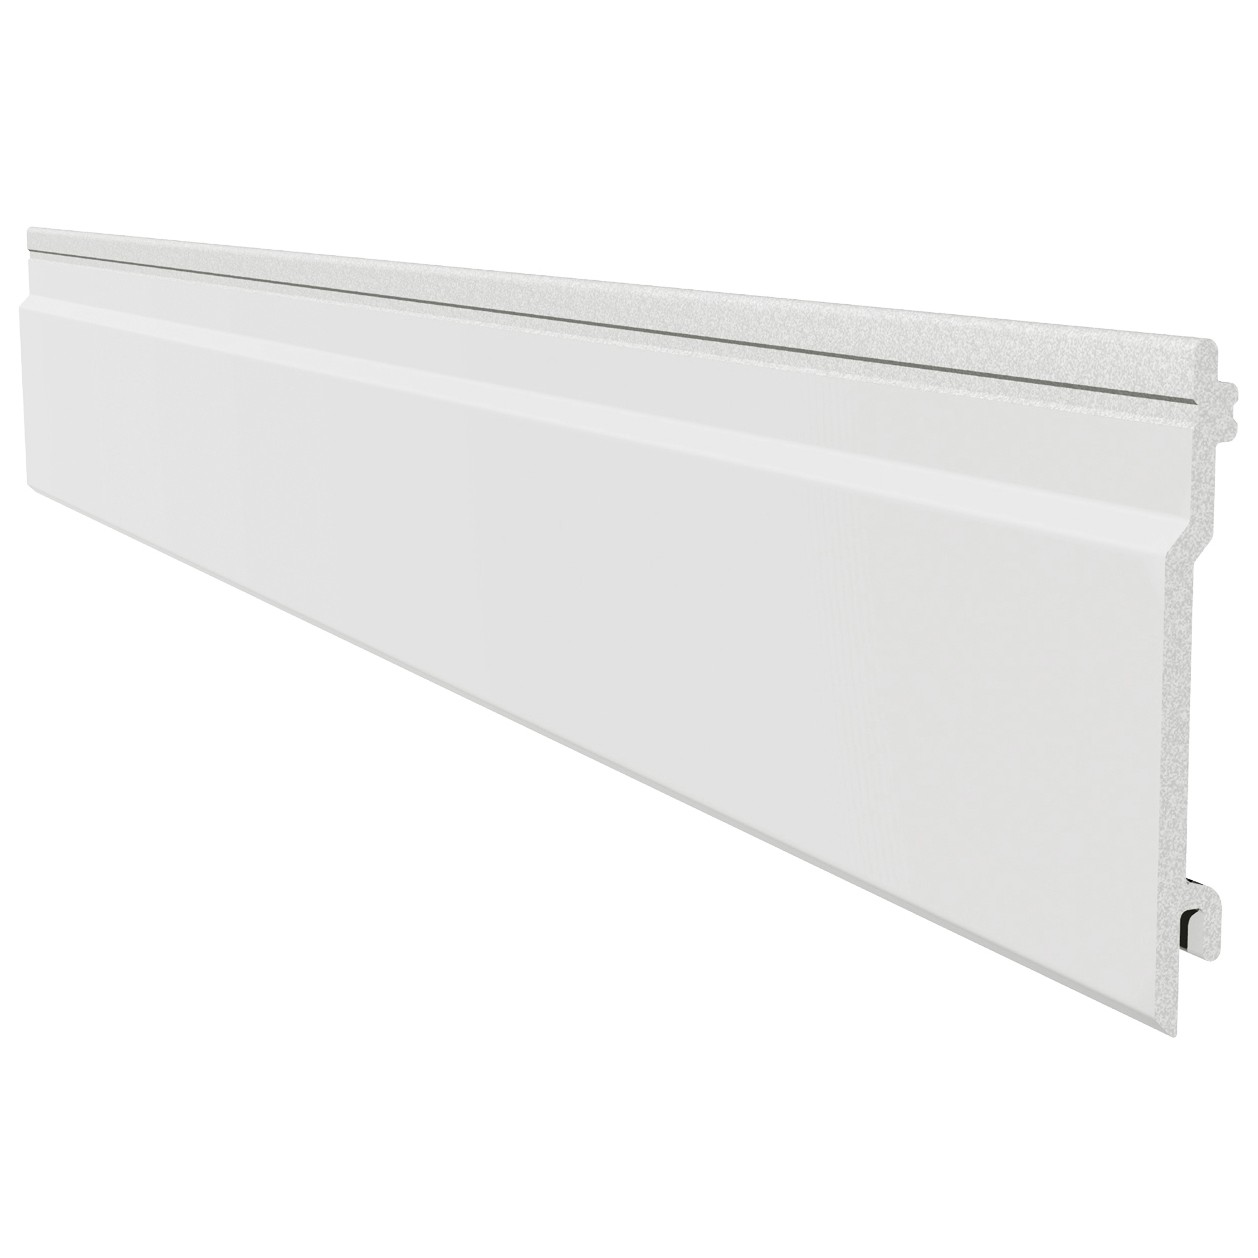 Freefoam Open V Cladding - White, 100mm, 5 Metre